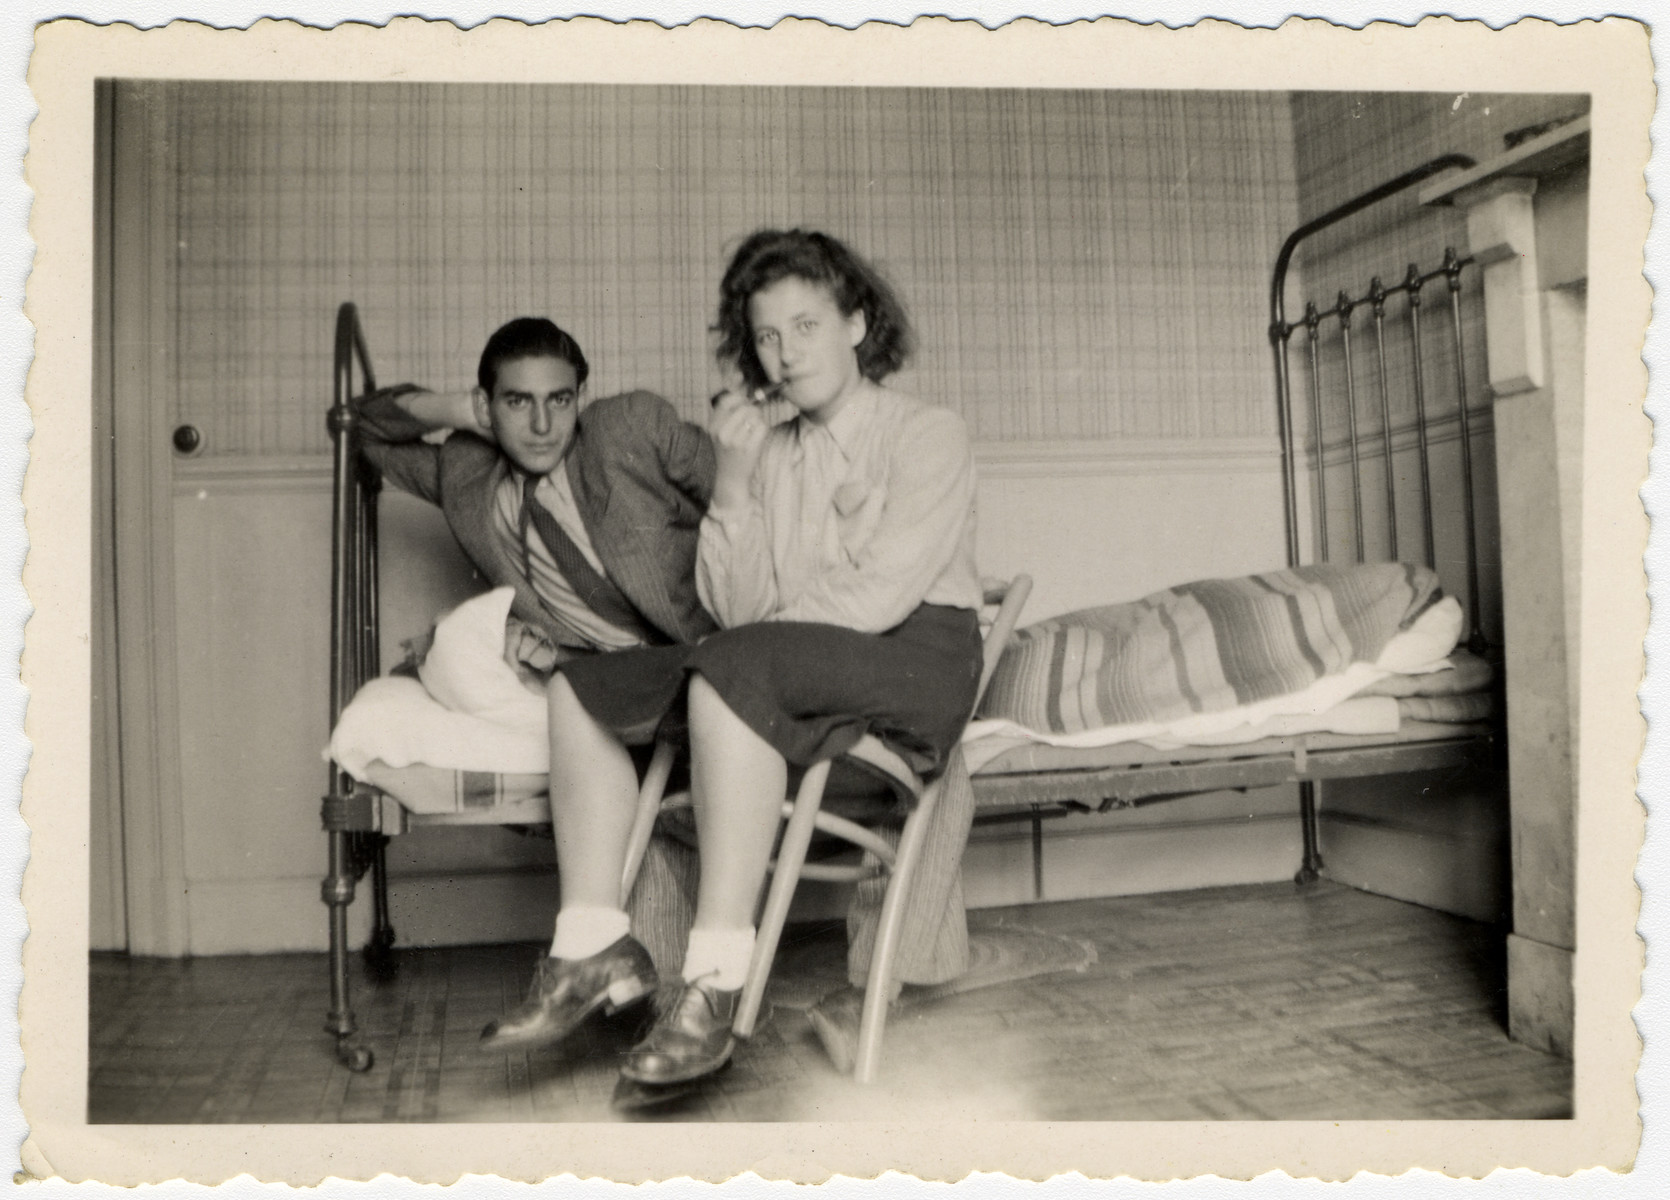 Two Jewish young people pose in a room with a bed and chair.  Pictured are Haim Vidal Sephiha and Ida (Naomi) Rosenschtraugh.  She later immigrated to Israel.